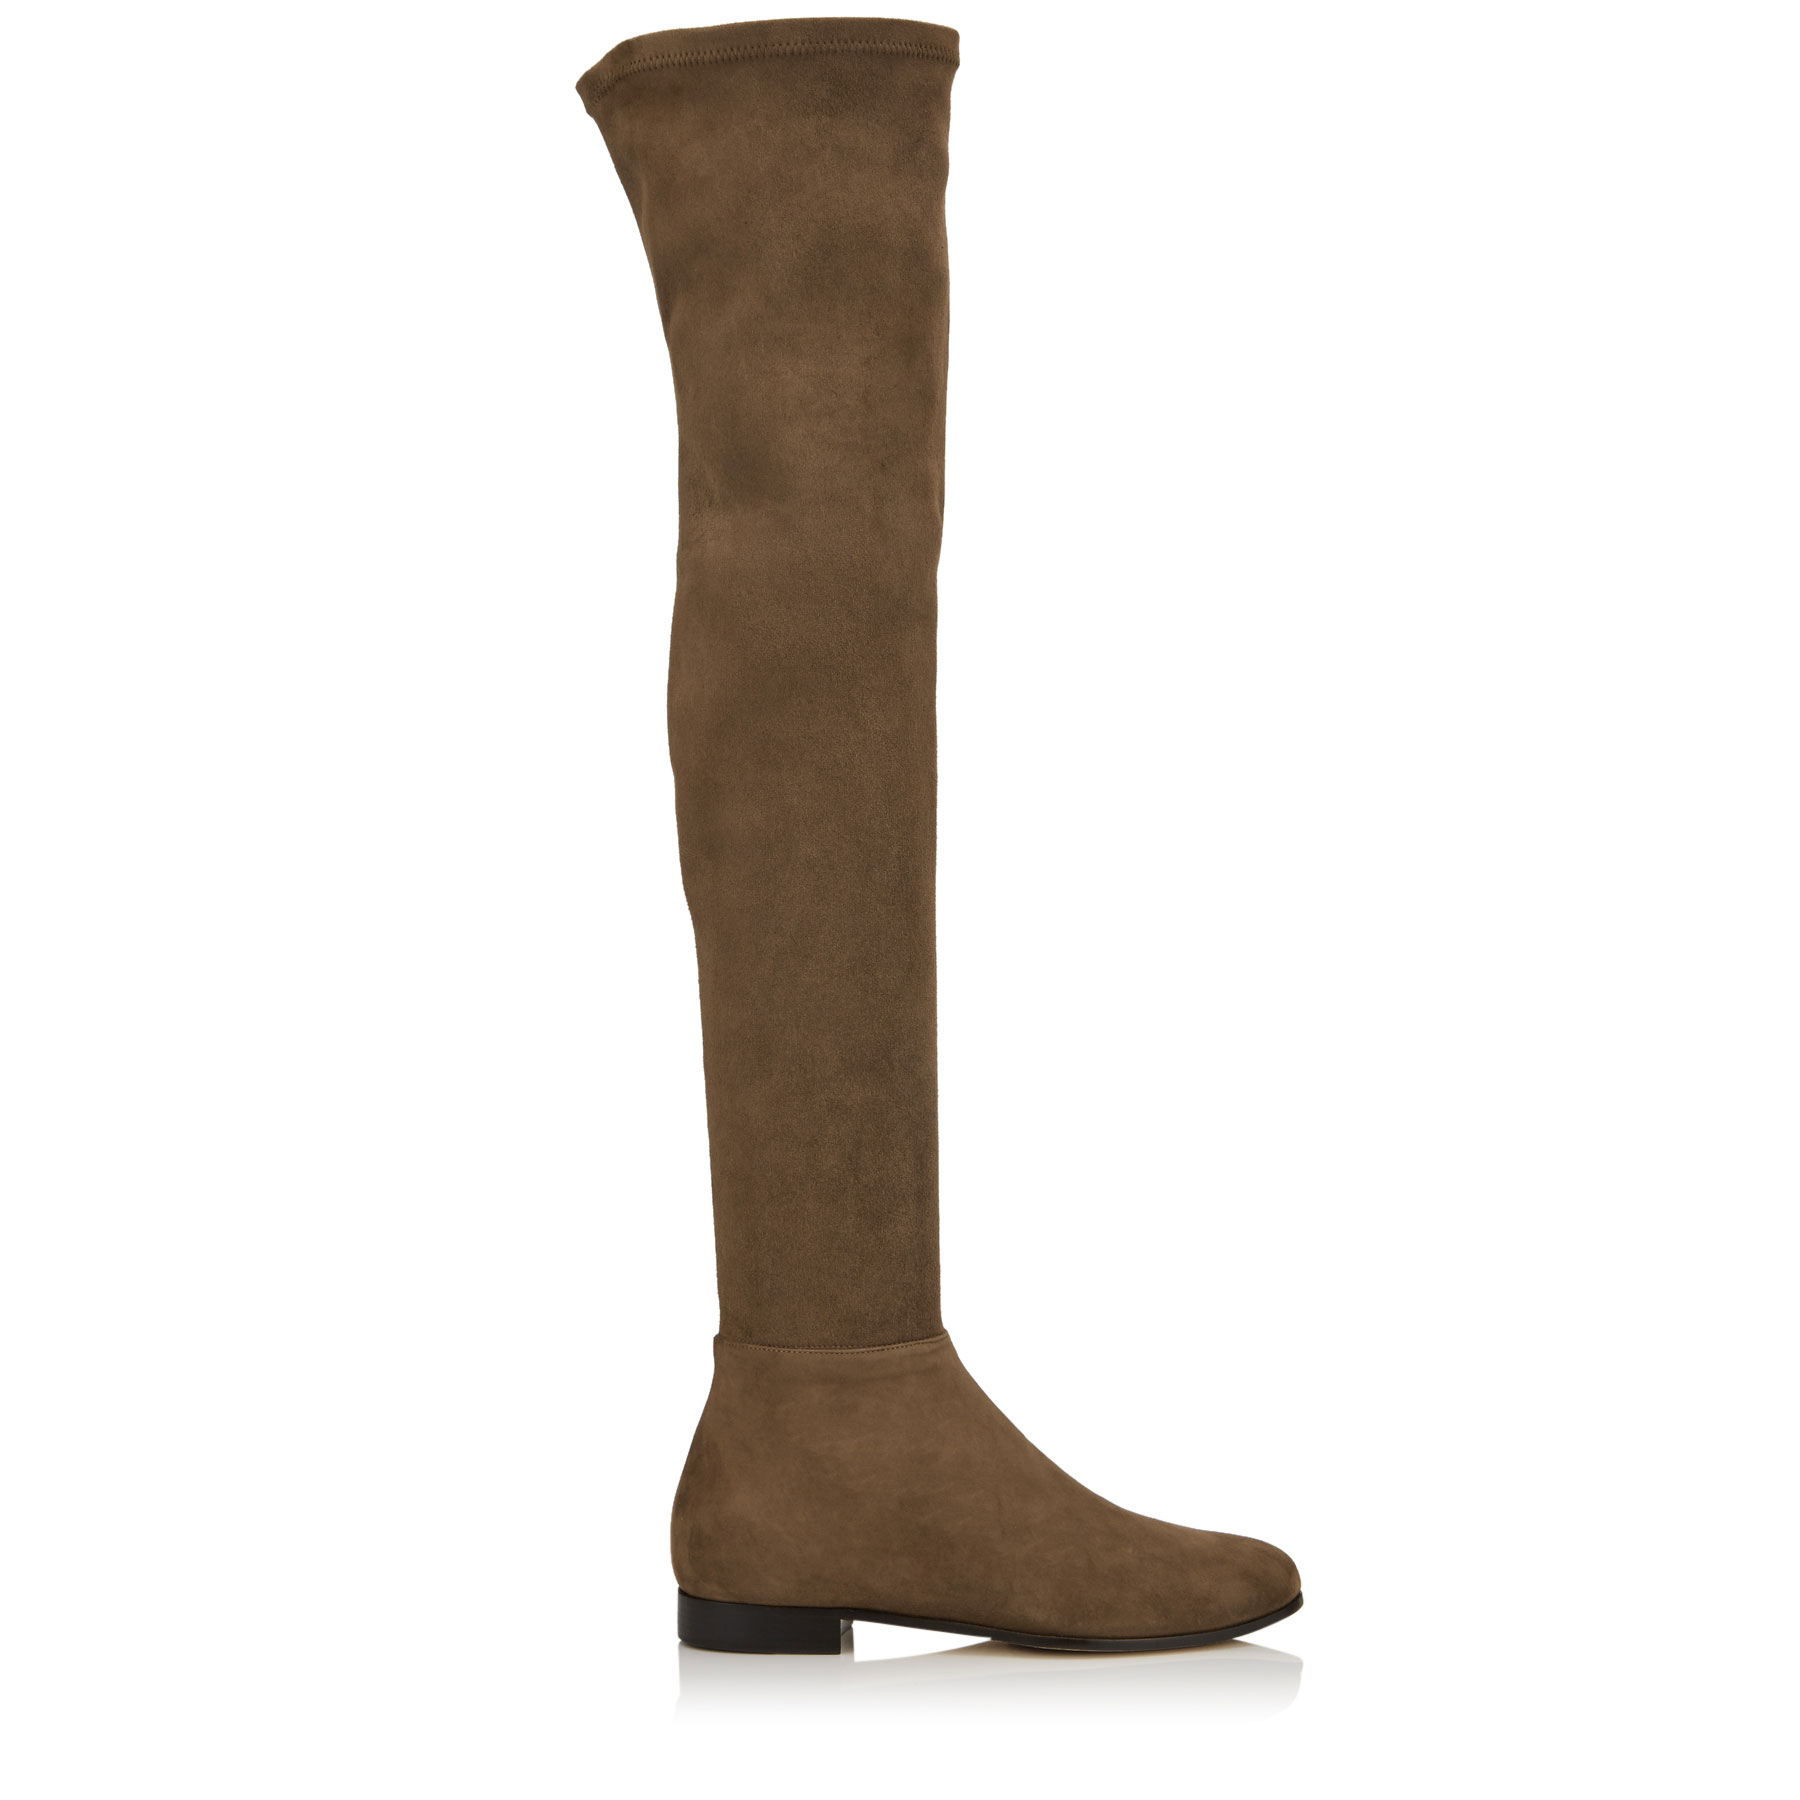 MYREN FLAT Khaki Brown Stretch Suede Over the Knee Boots